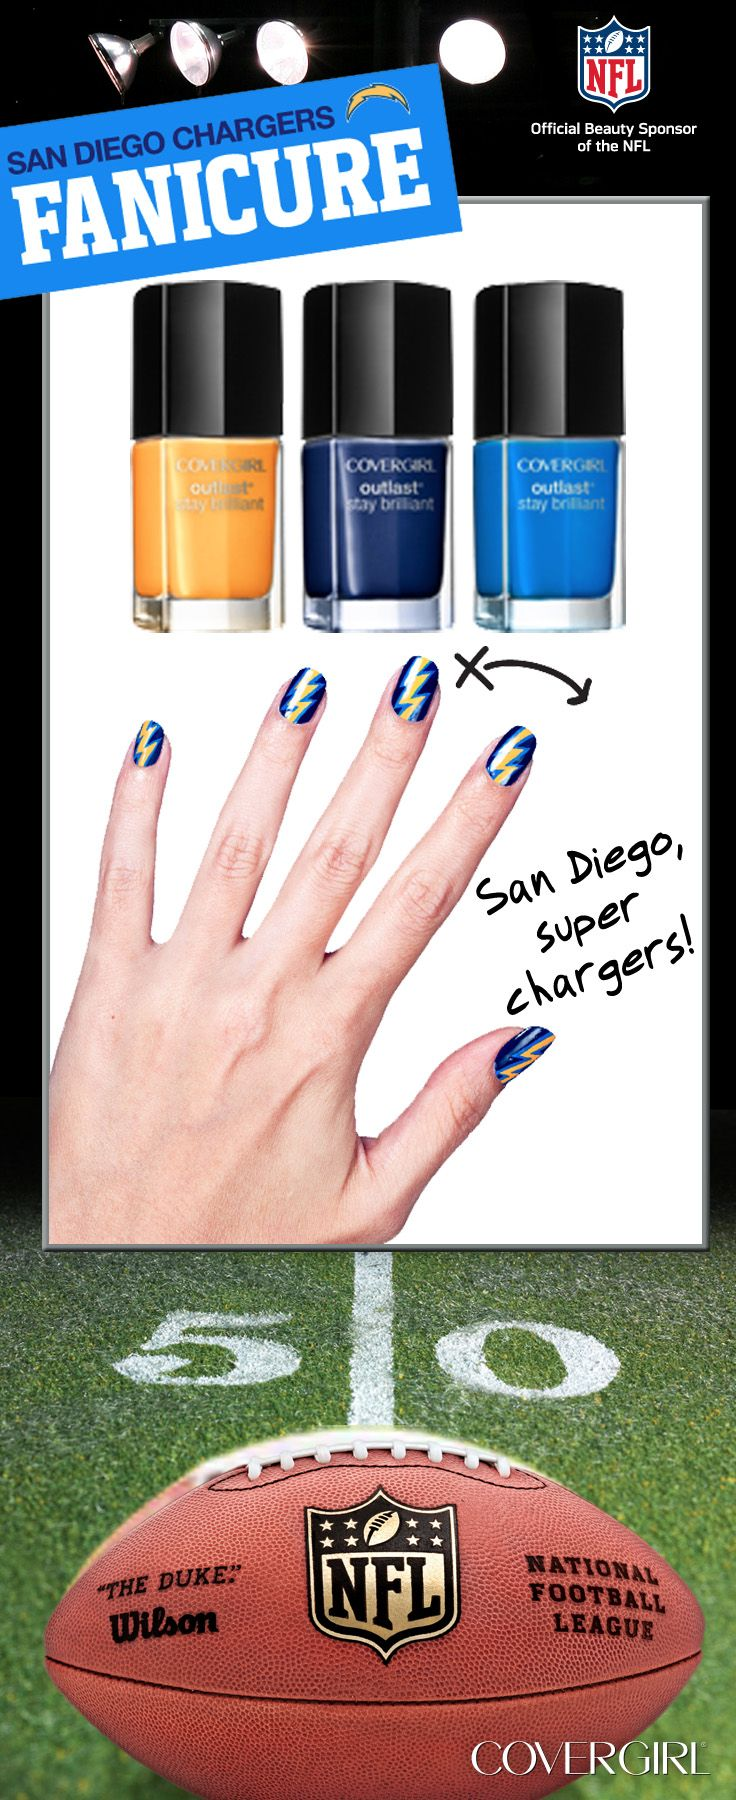 San Diego, super Chargers!